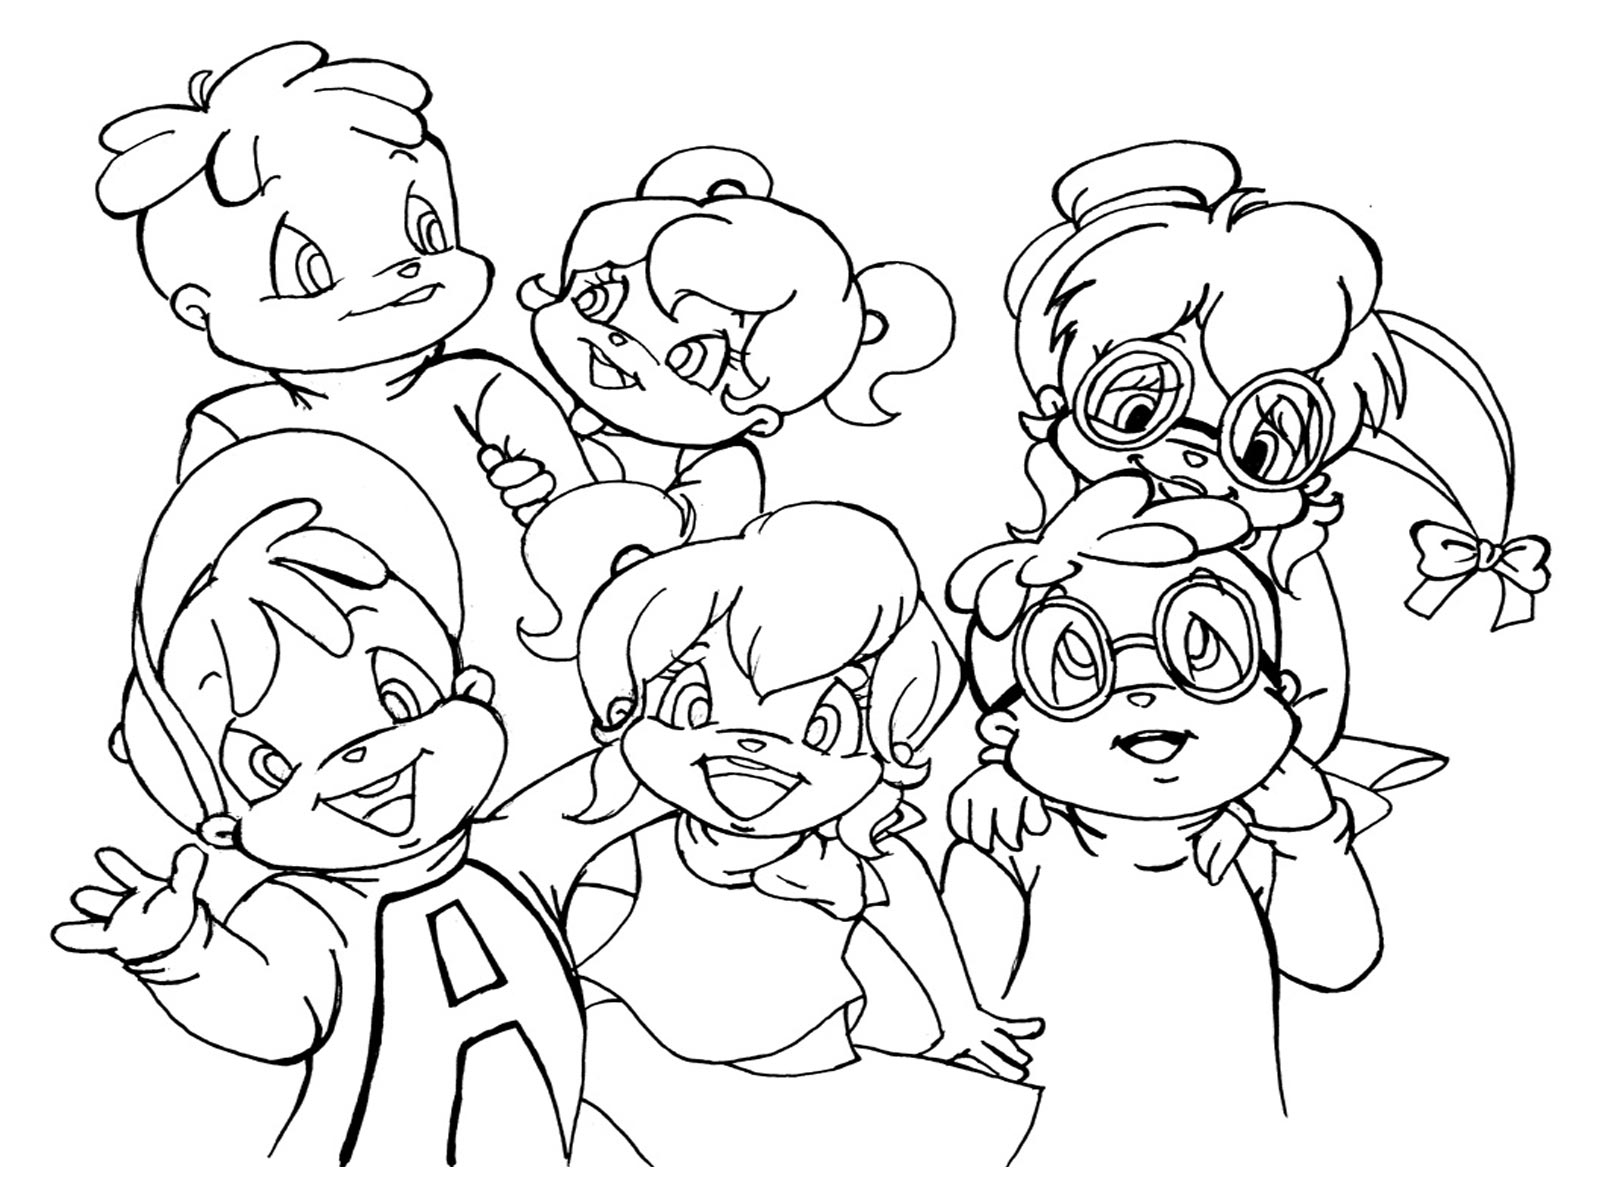 chipmunks coloring pages free printable chipettes coloring pages for kids